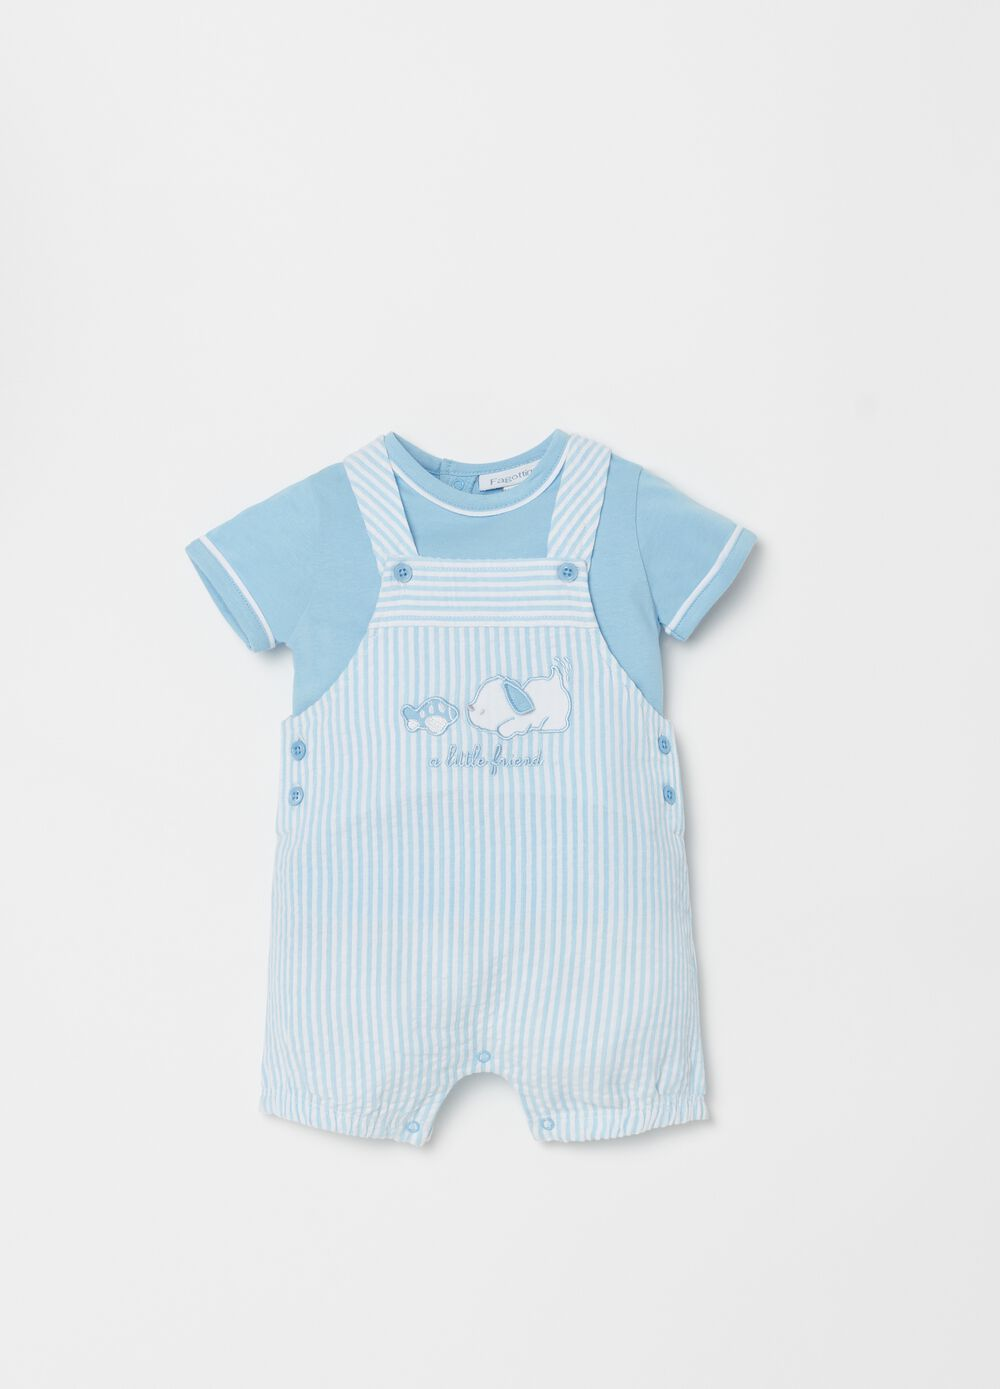 T-shirt and onesie set with embroidery and stripes